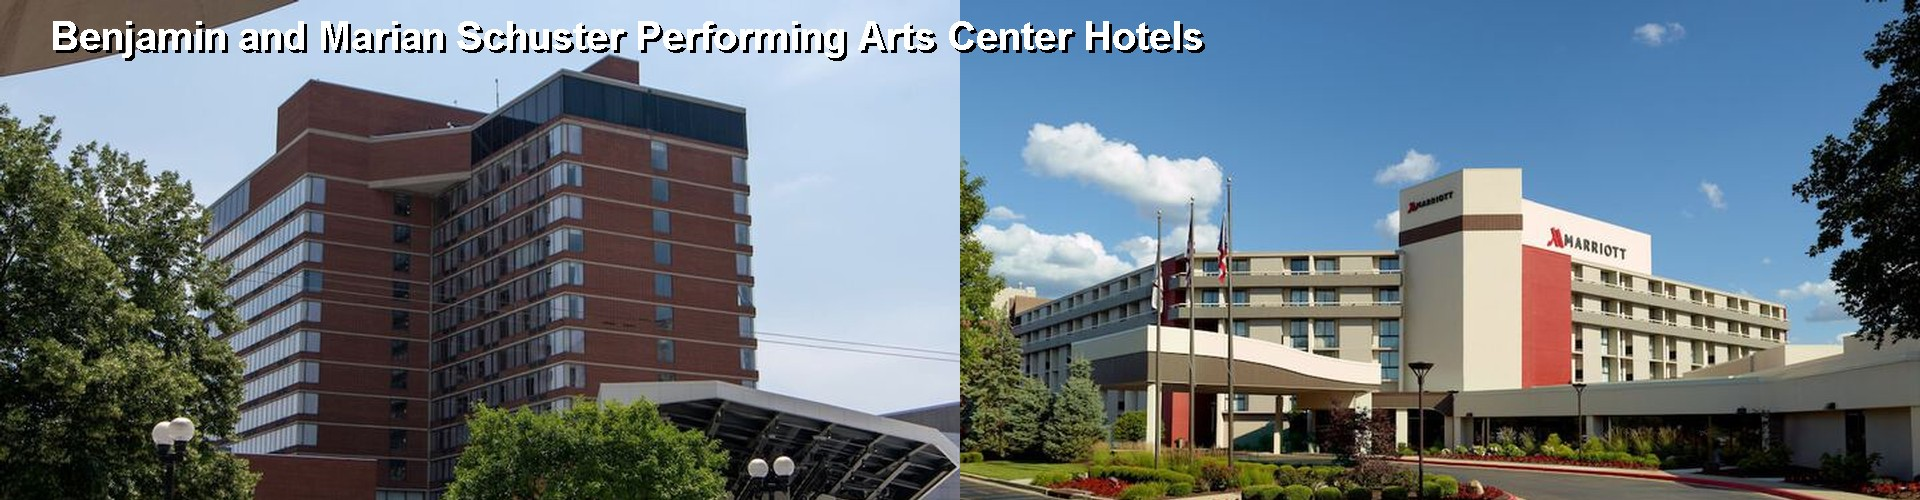 5 Best Hotels near Benjamin and Marian Schuster Performing Arts Center